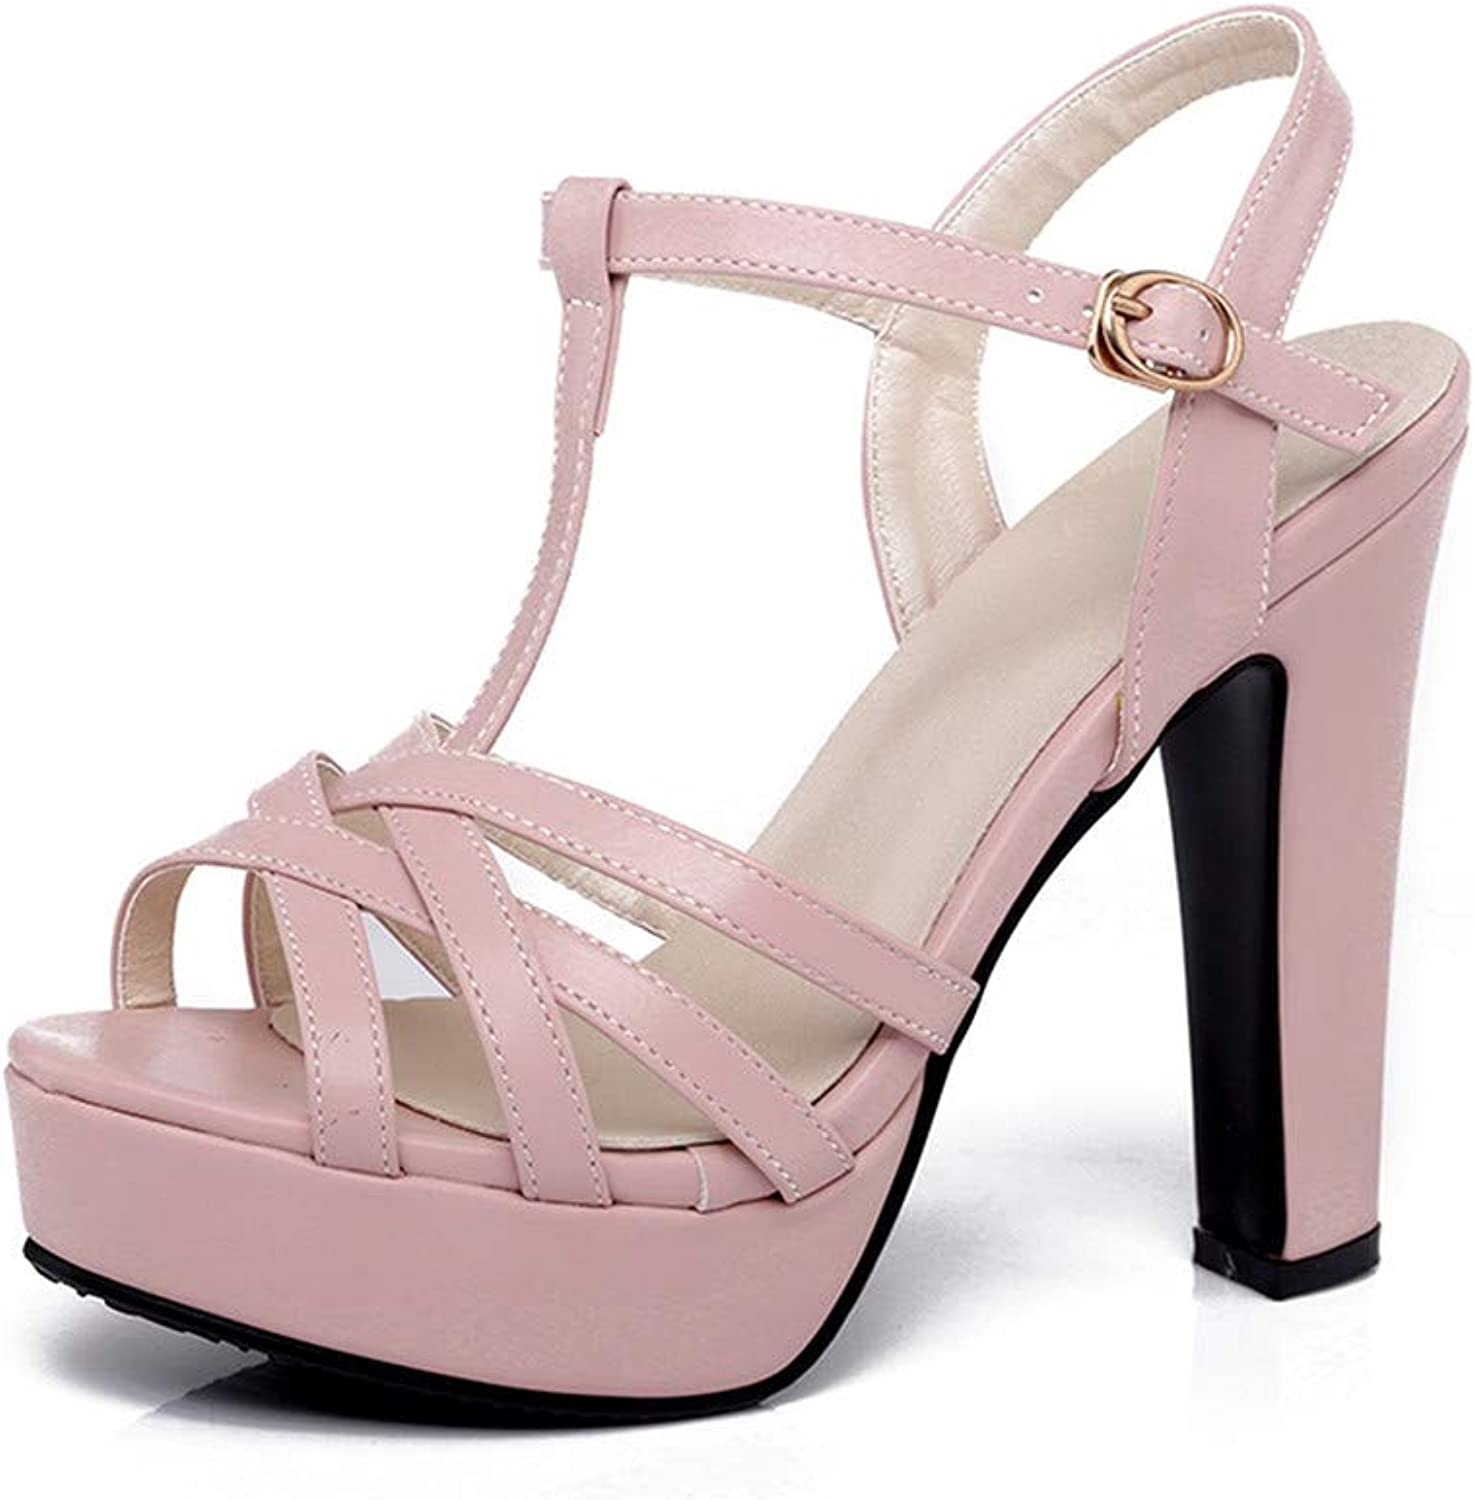 GAO-GEN1 31-43 Black White Pink Sandals Women shoes Summer High Heels Party Wedding Bride shoes Woman